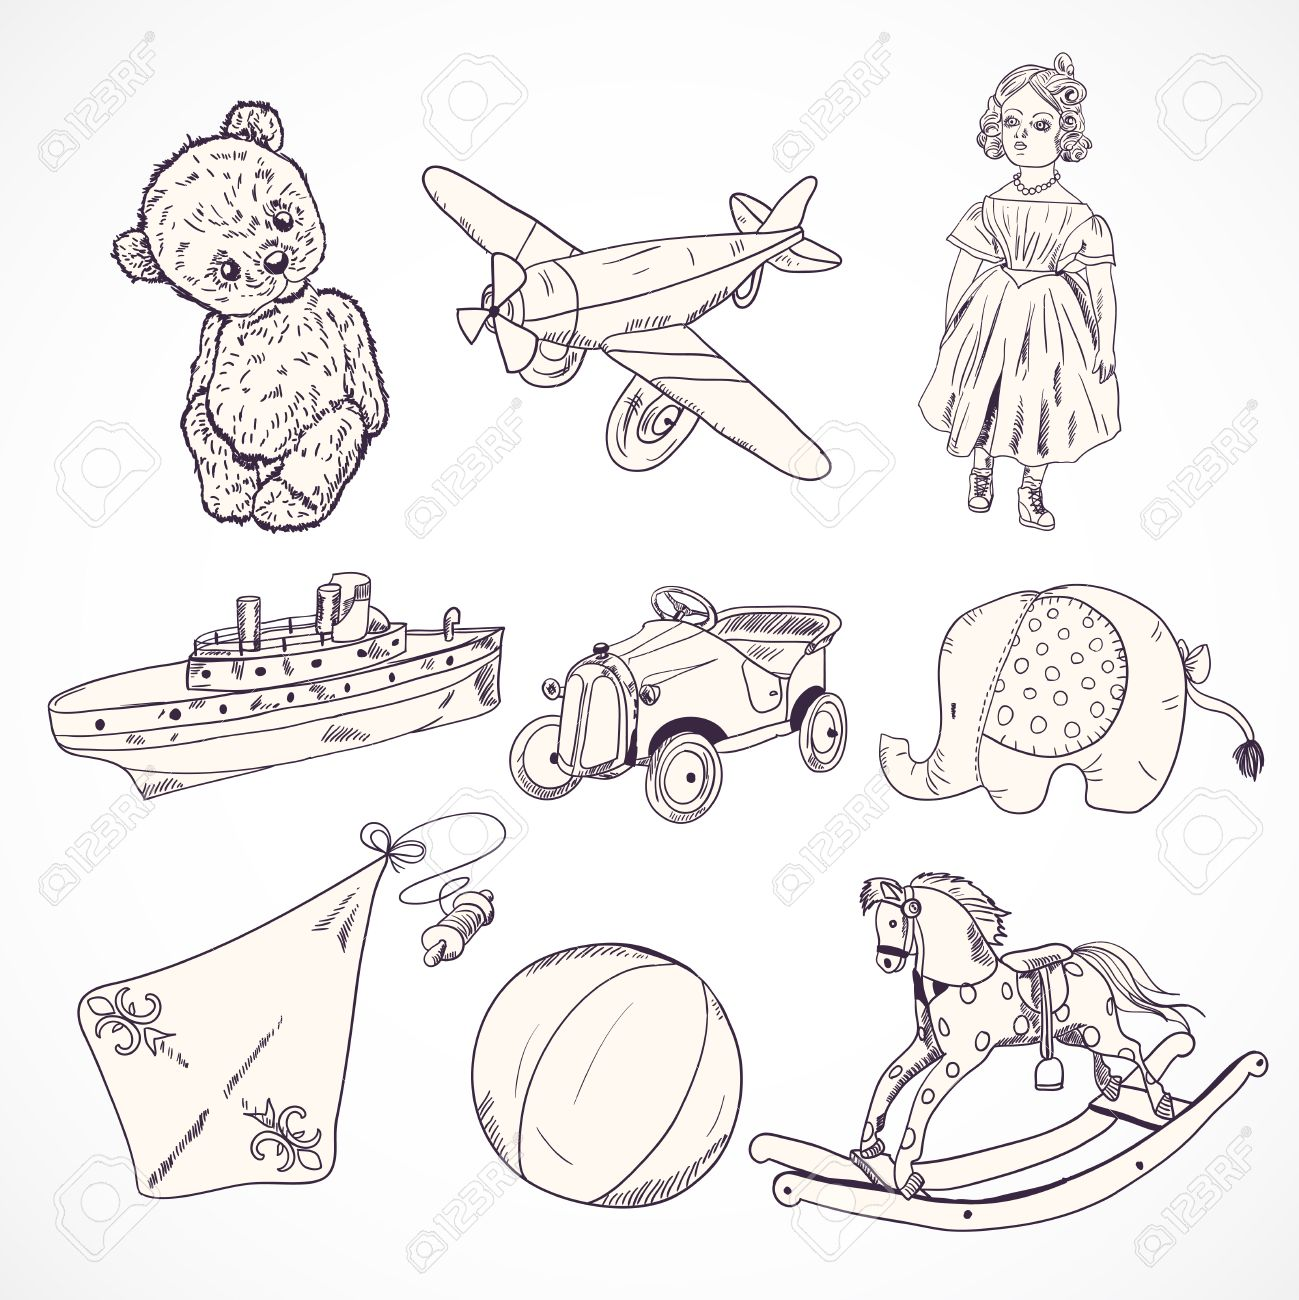 Teddy clipart kids toy #6